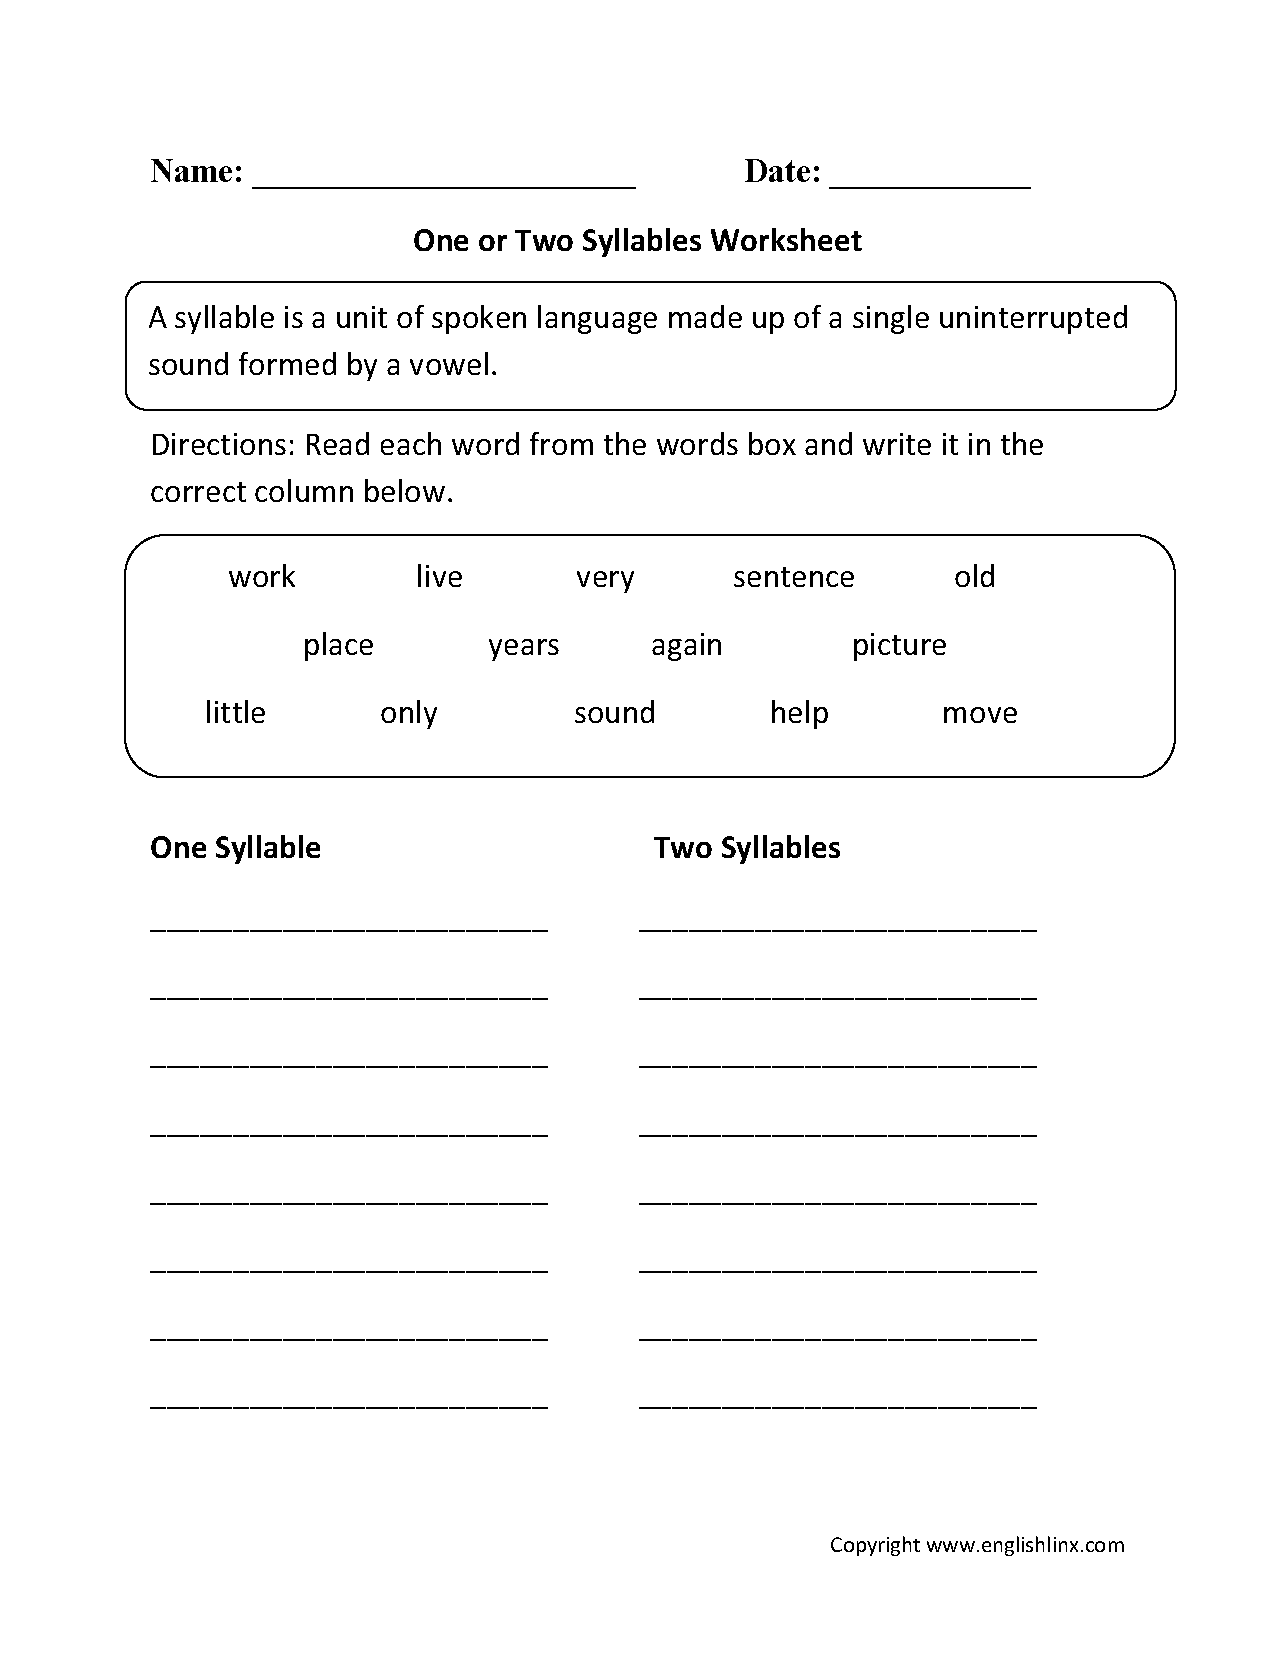 Worksheets Vccv Pattern Worksheets one or two syllables worksheet 1 pinterest syllable phonics reading columns spelling worksheets